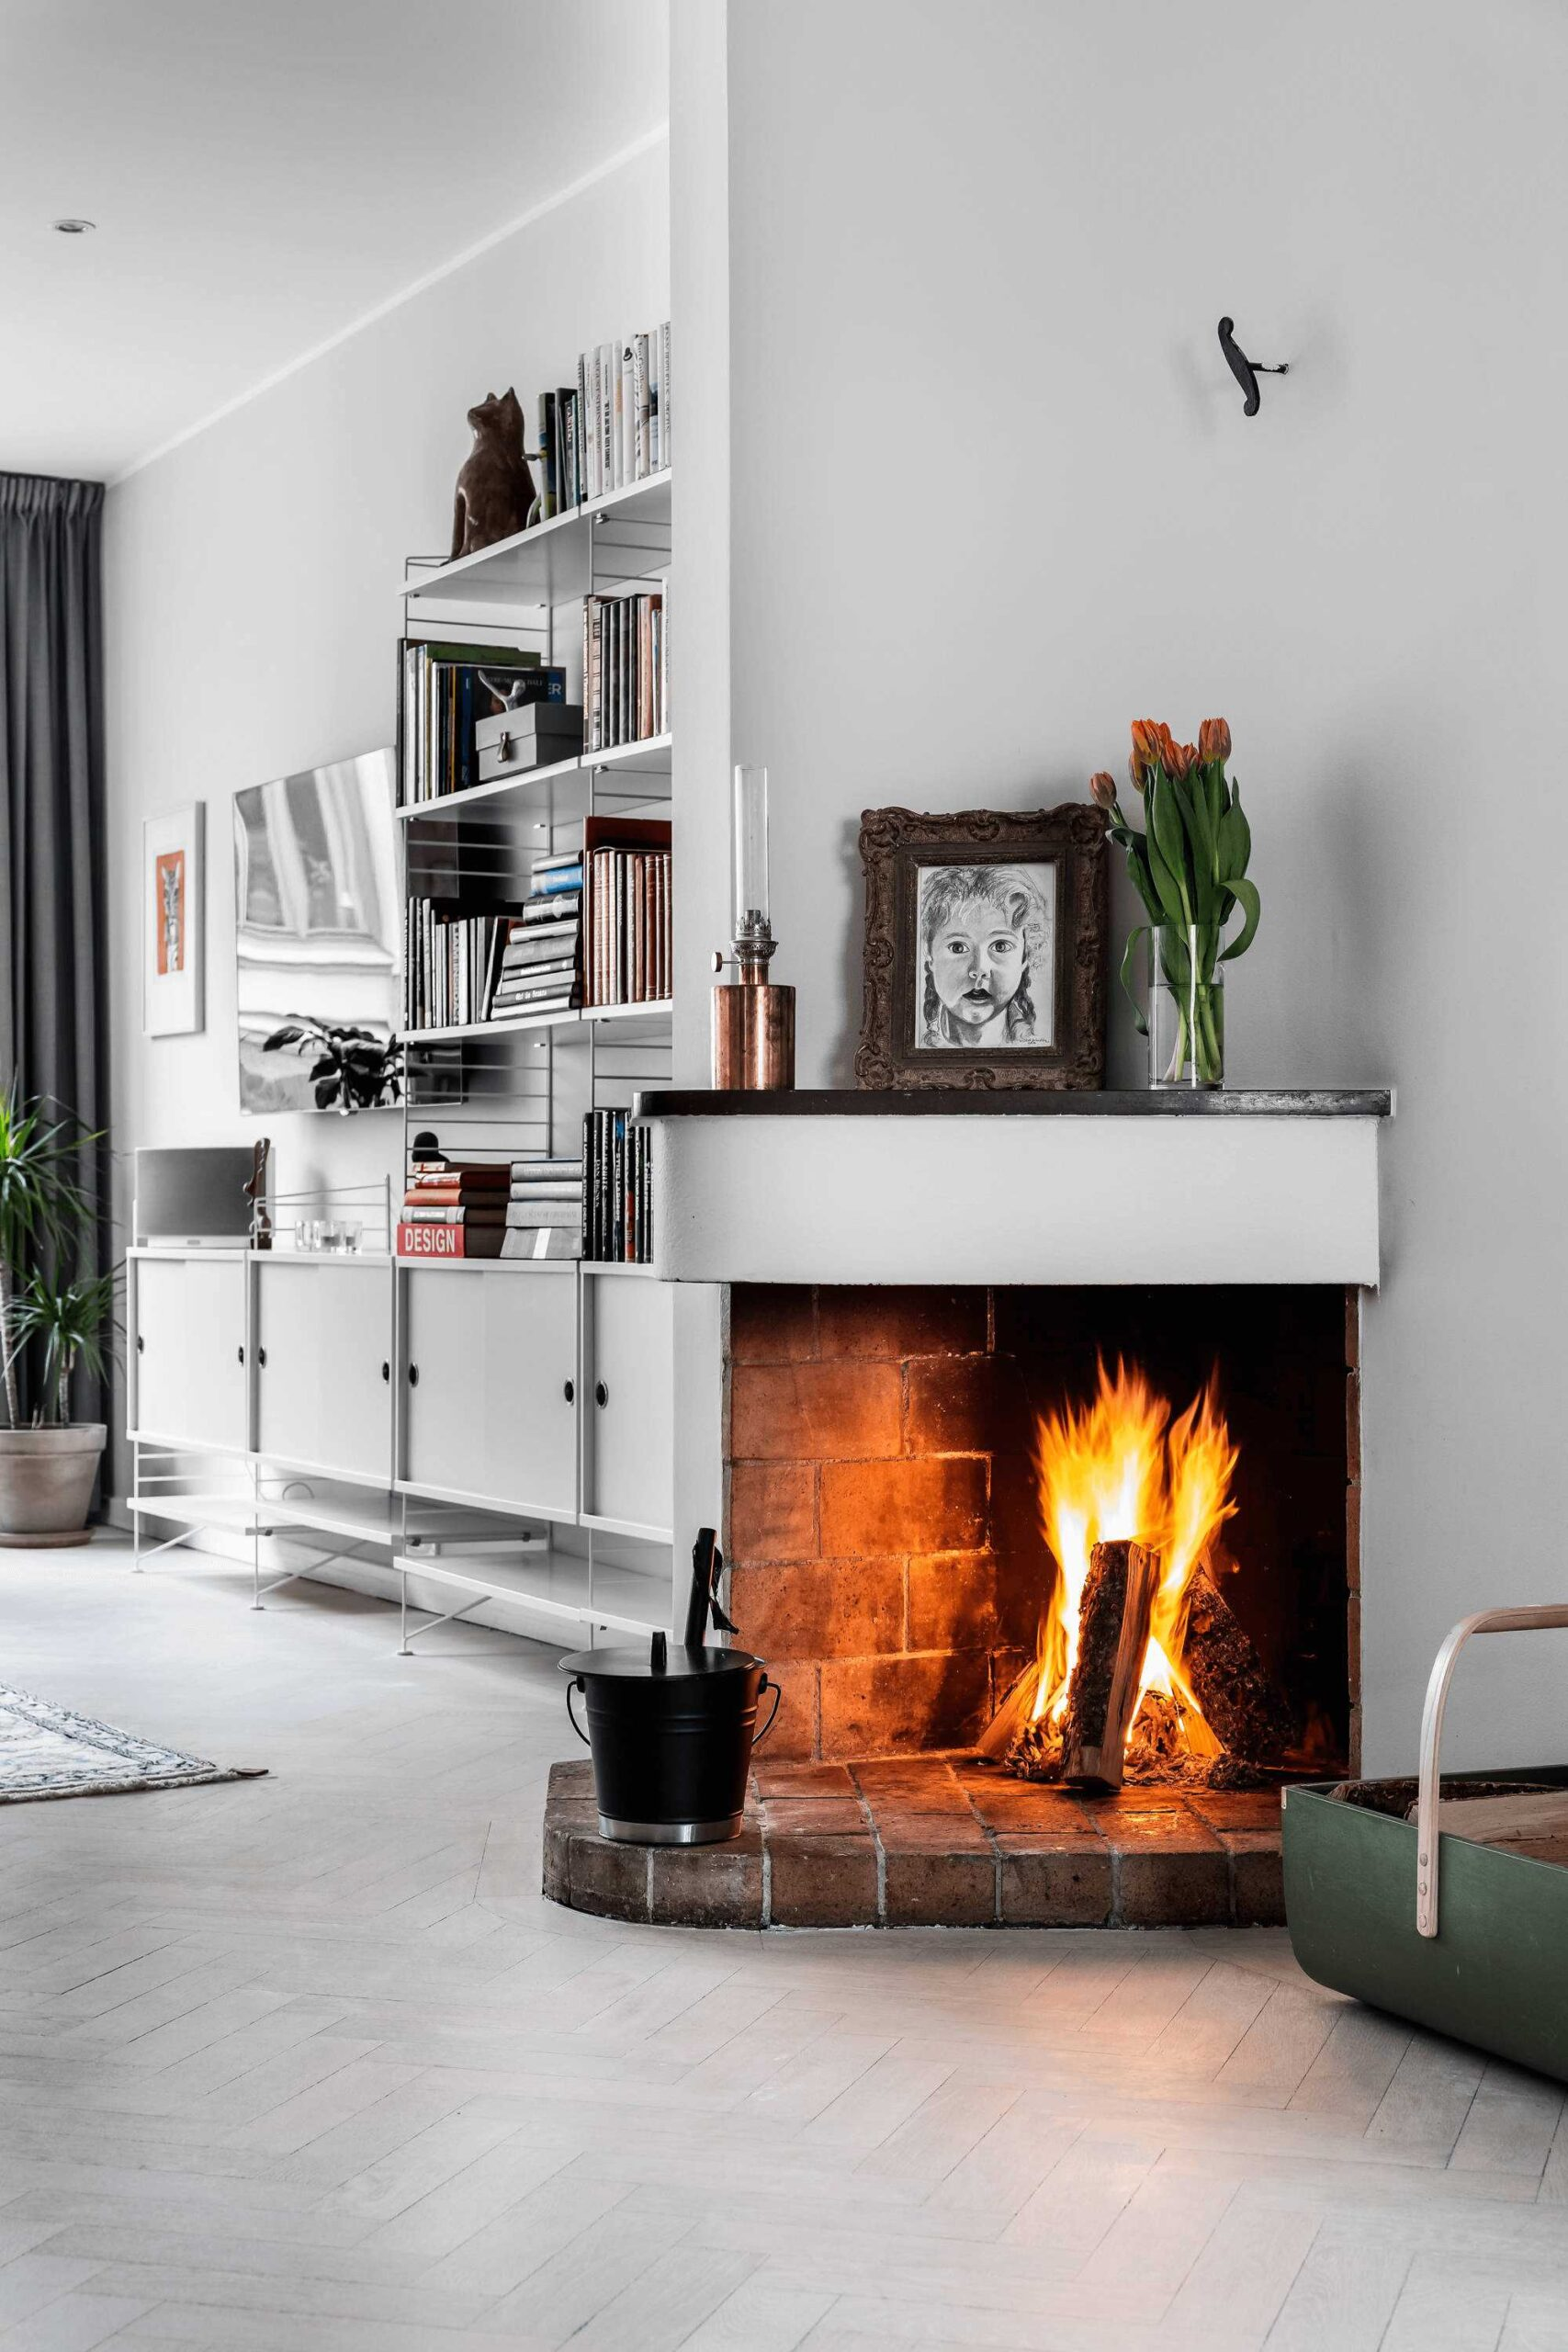 this-is-a-fireplace-in-an-apartment-with-ornaments-on-show